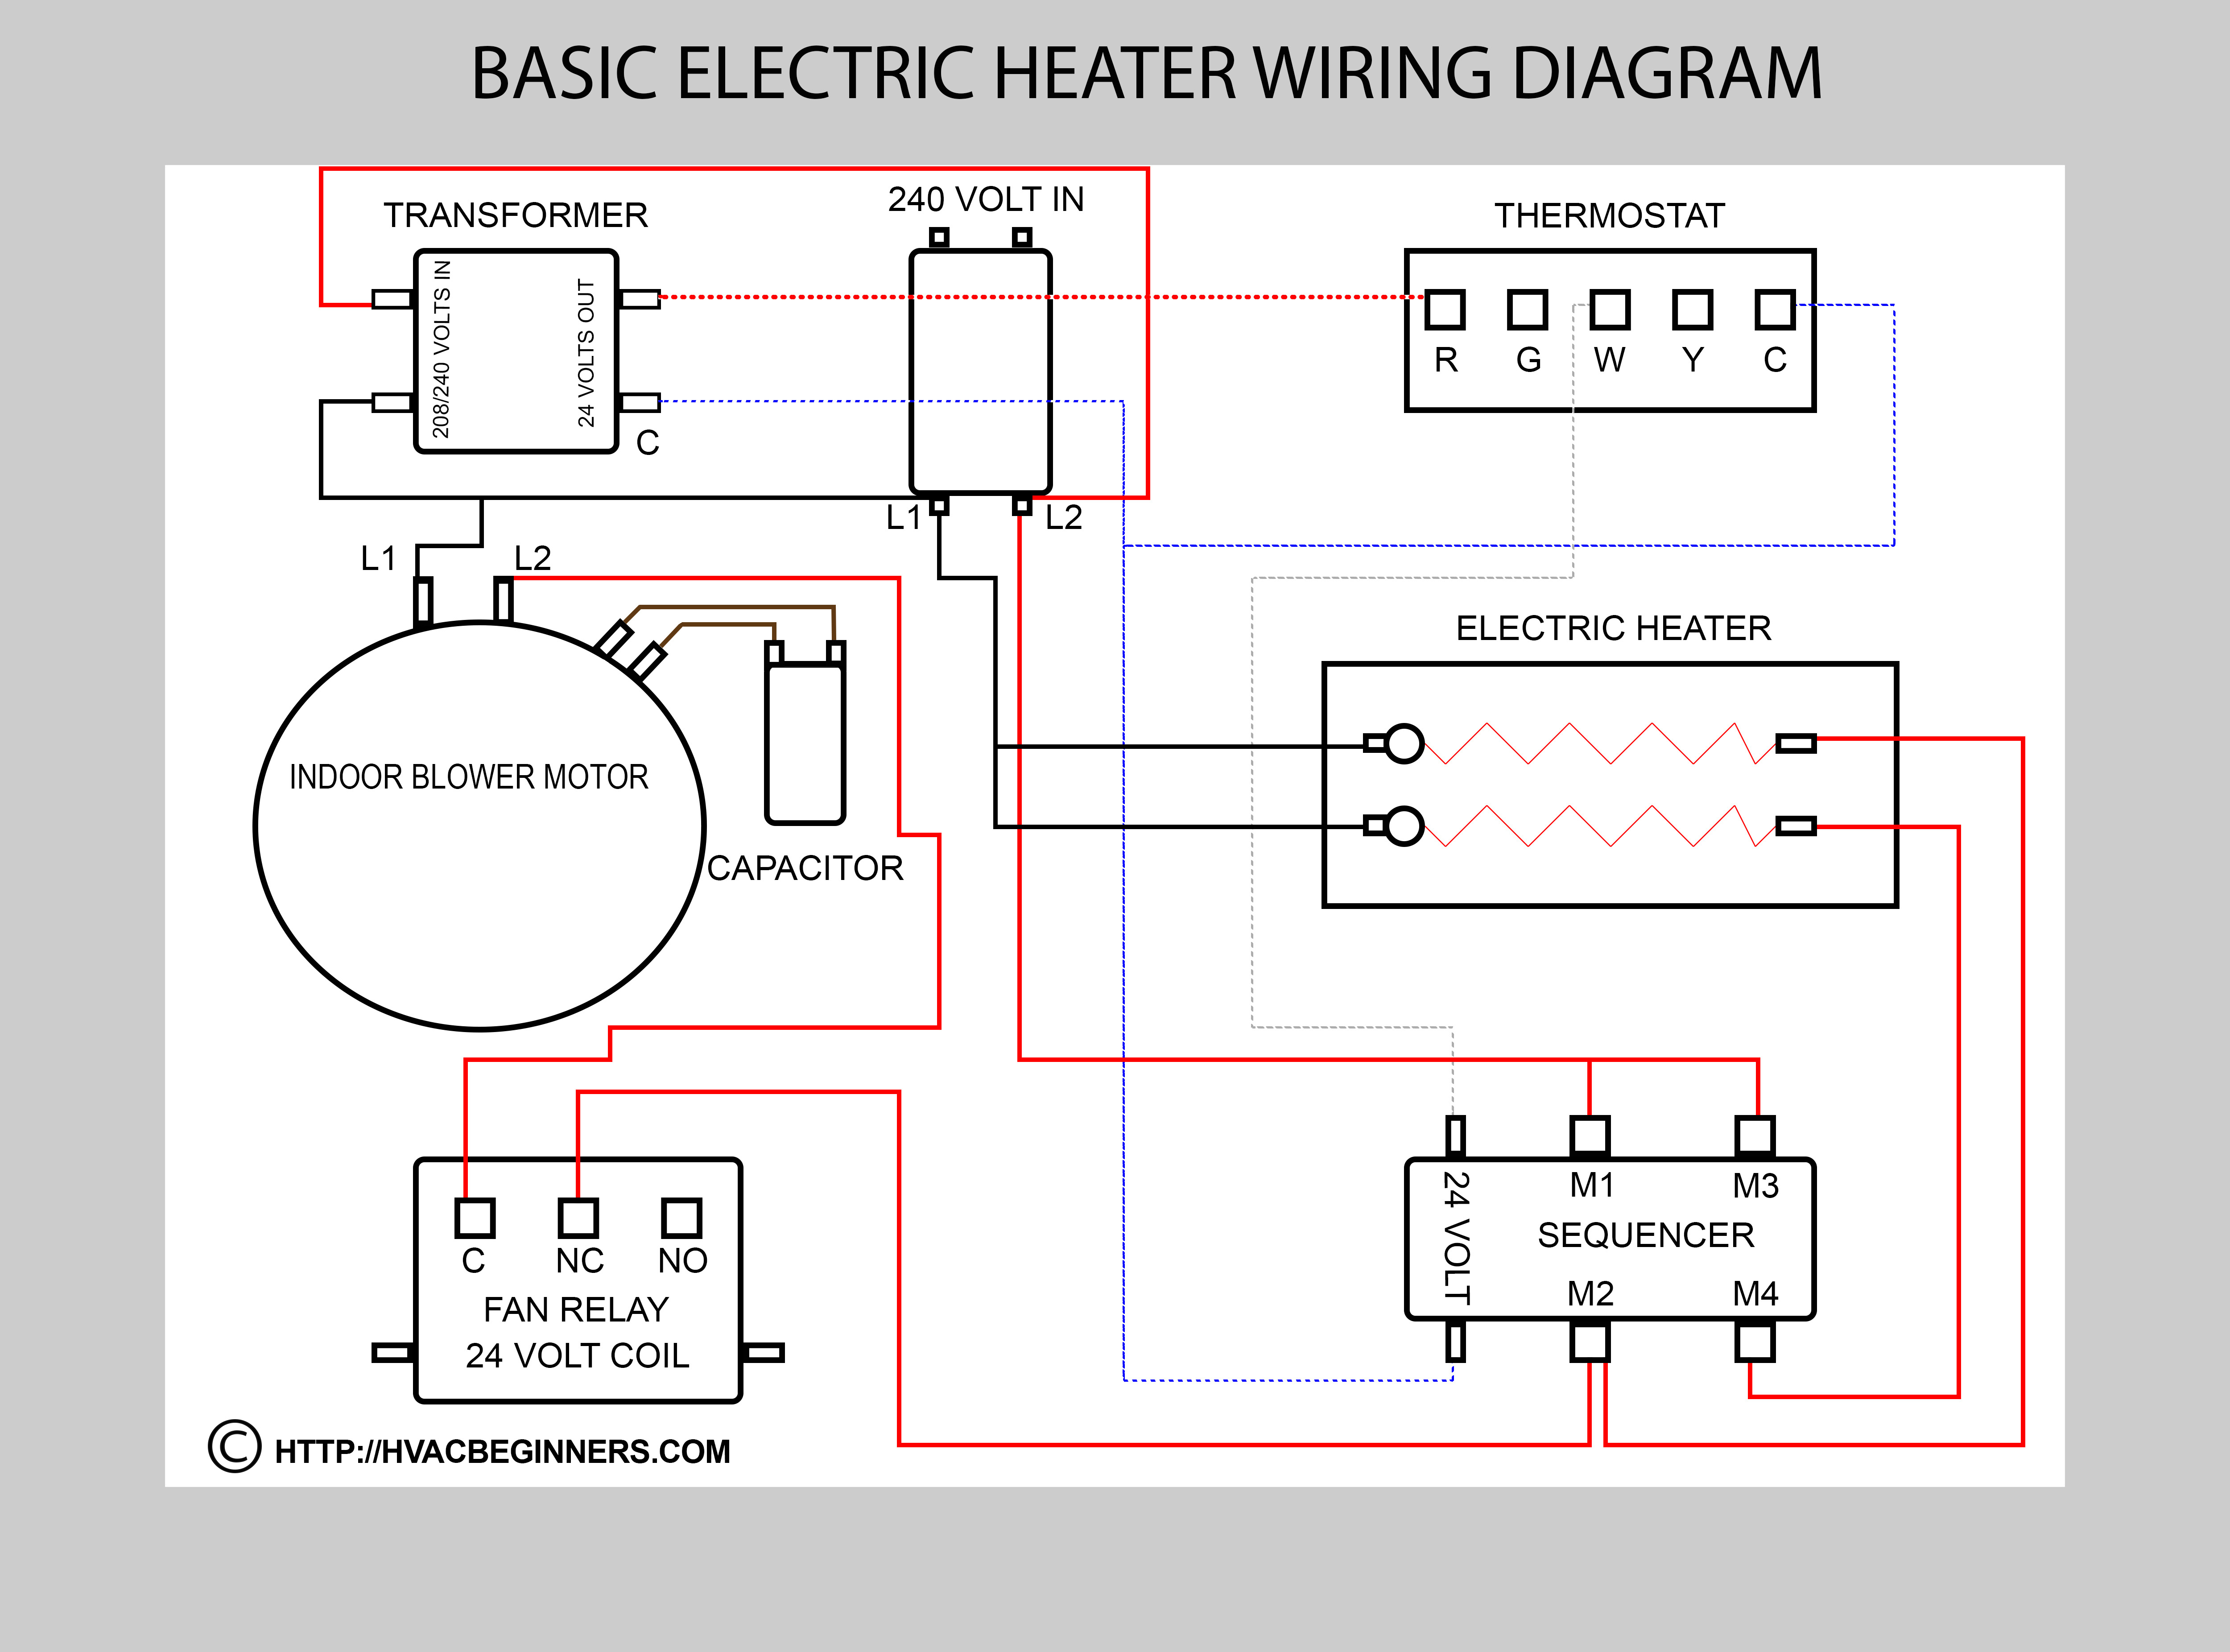 Truck In Air Conditioning Wiring Diagram | Schematic Diagram - Air Handler Wiring Diagram